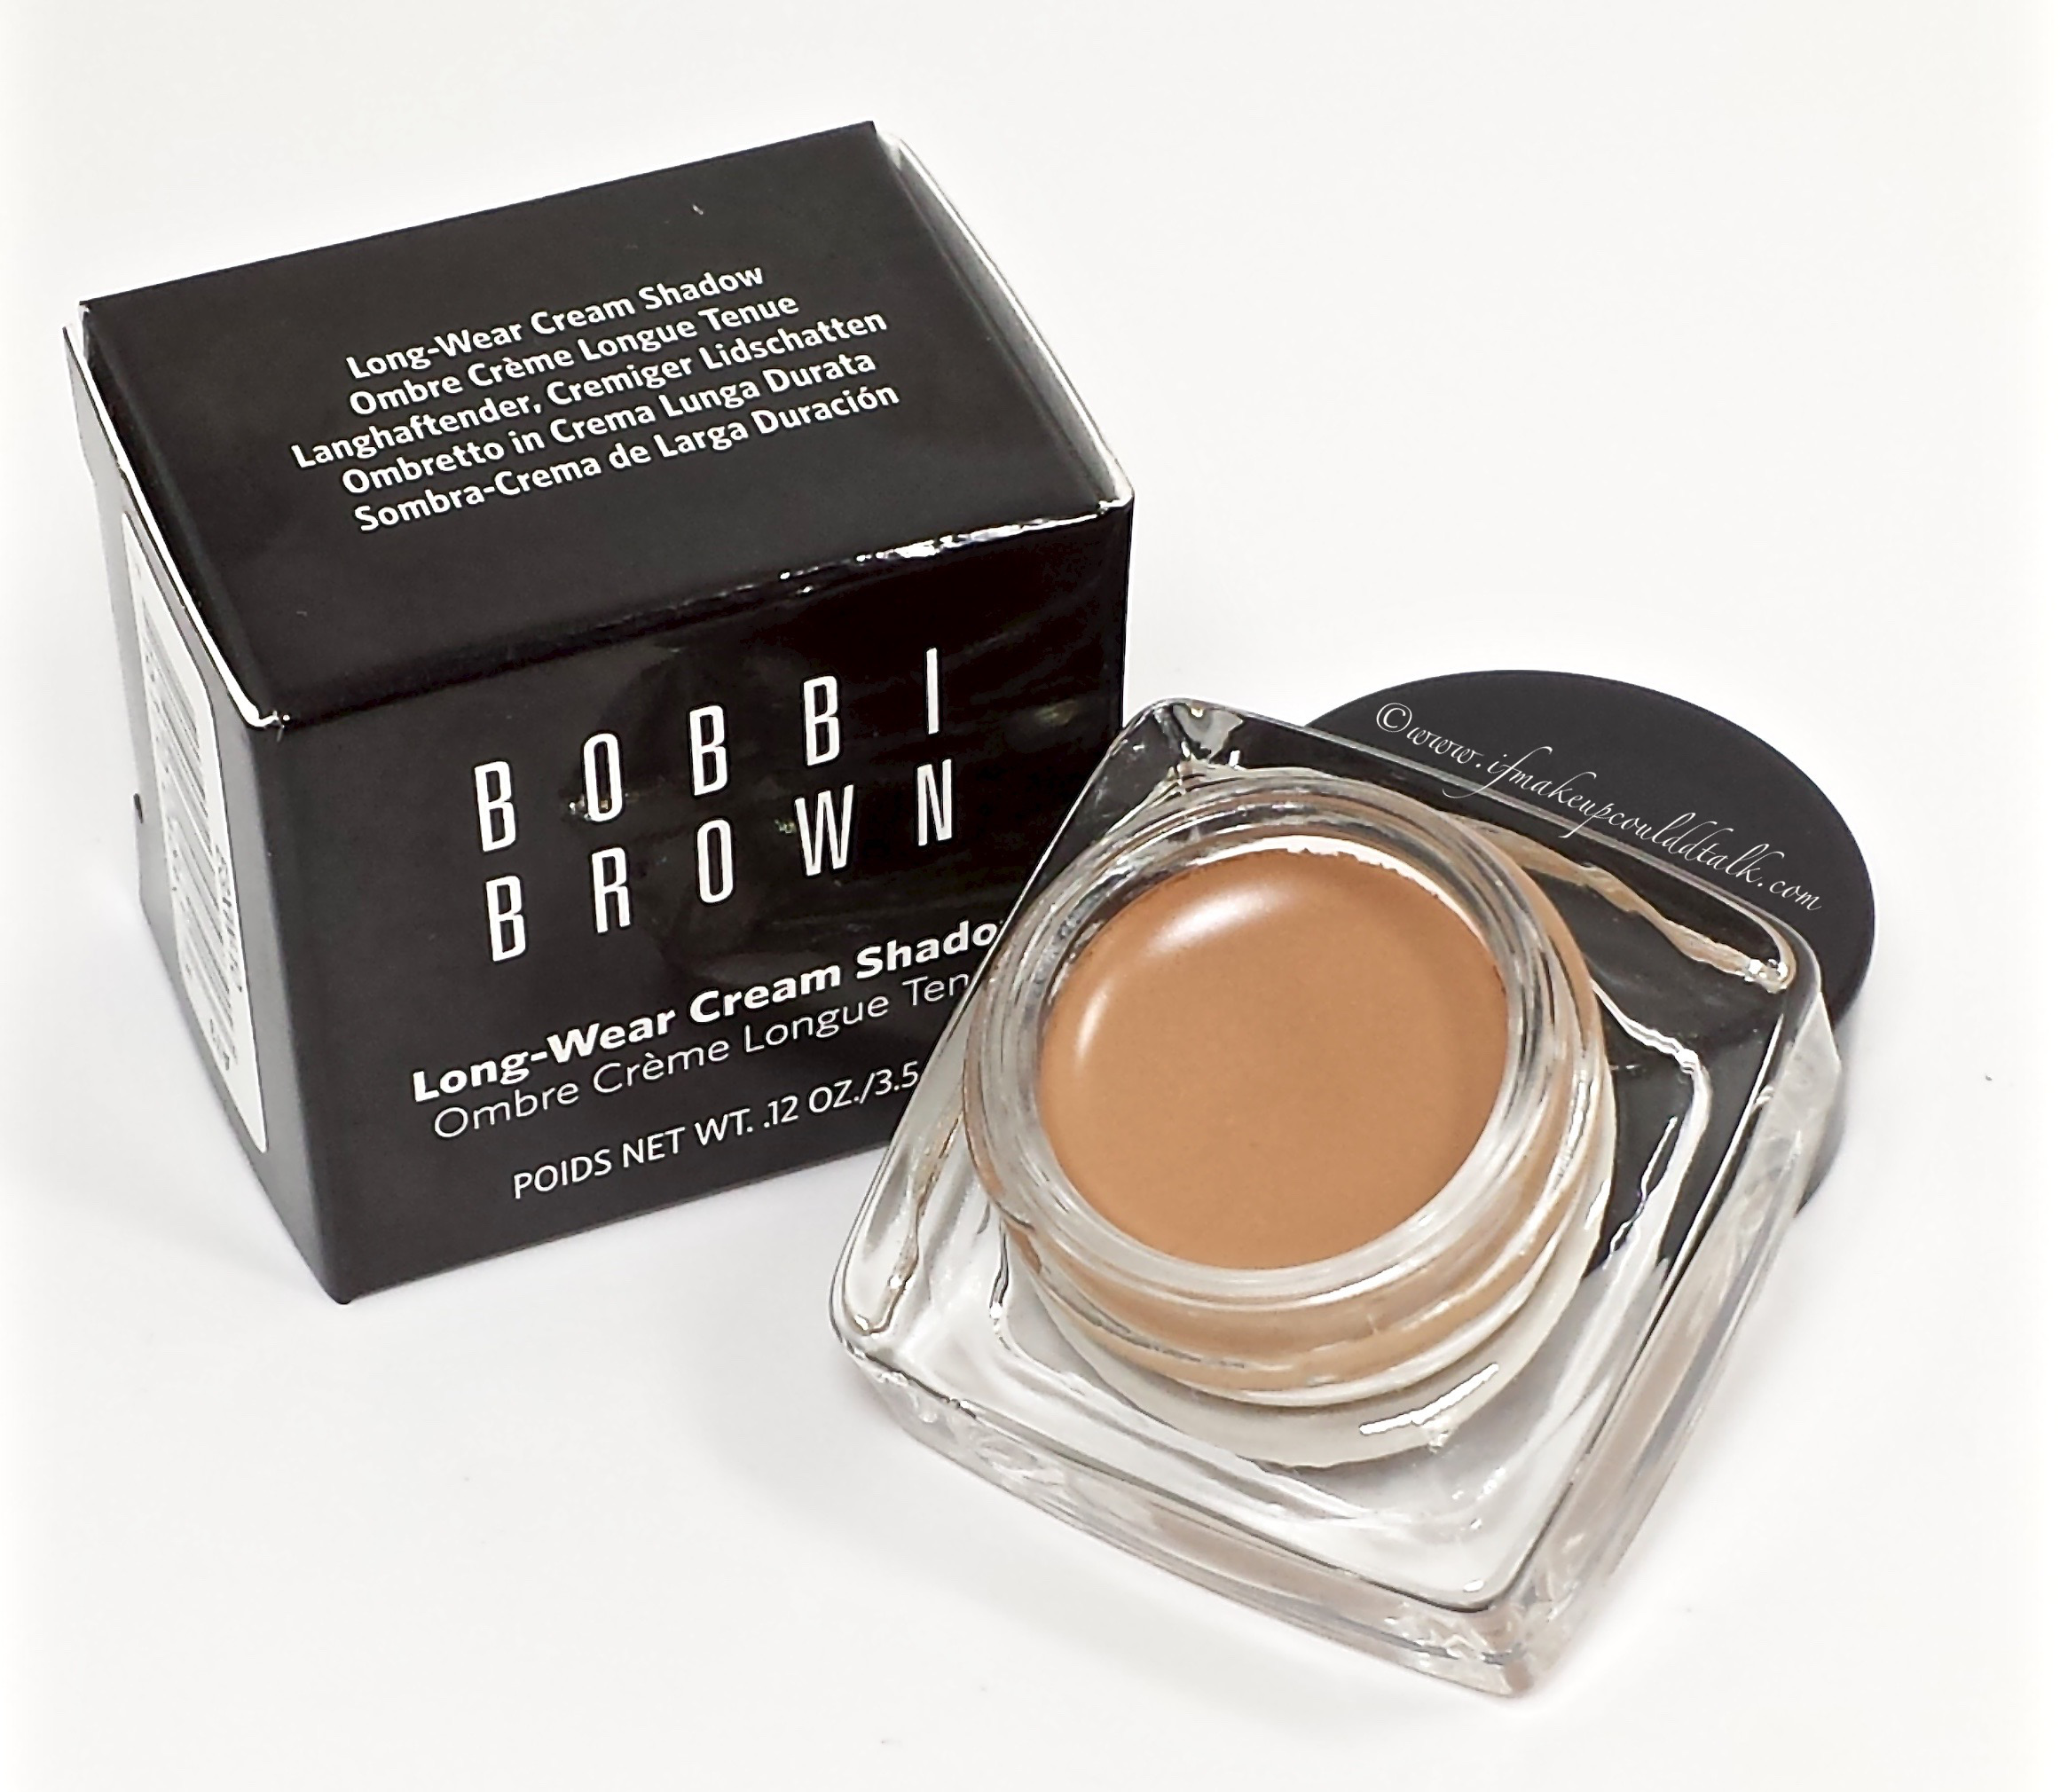 Bobbi Brown Suede Long Wear Cream Shadow Review And Looks